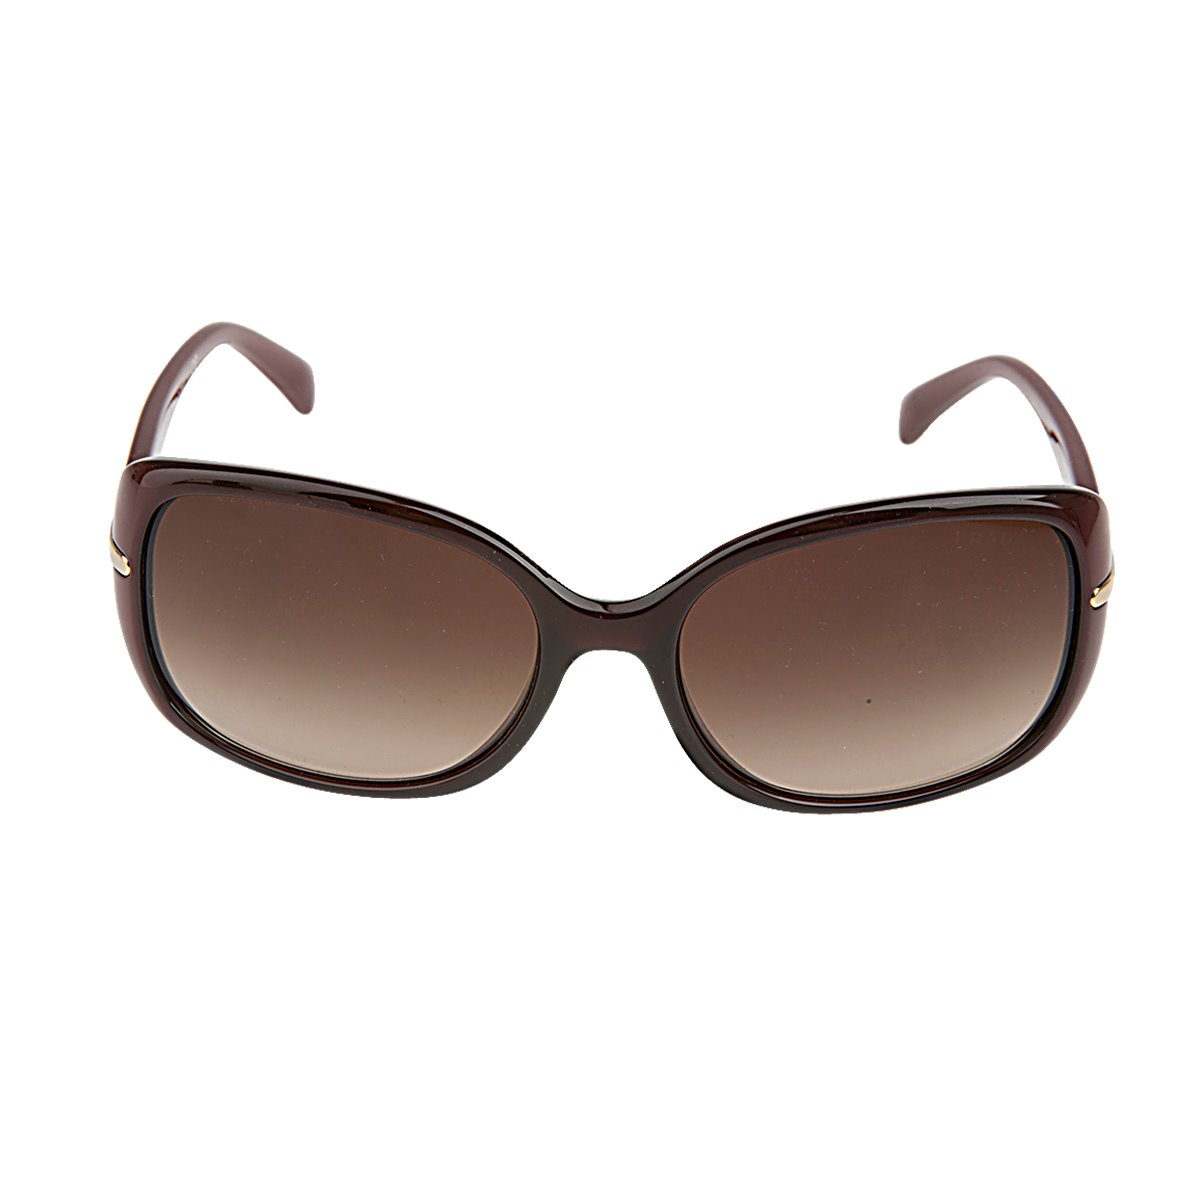 629c00a1beebd Brand New Authentic Prada SPR 08OS IAD6S1 Bordeaux Gradient Red Sunglasses